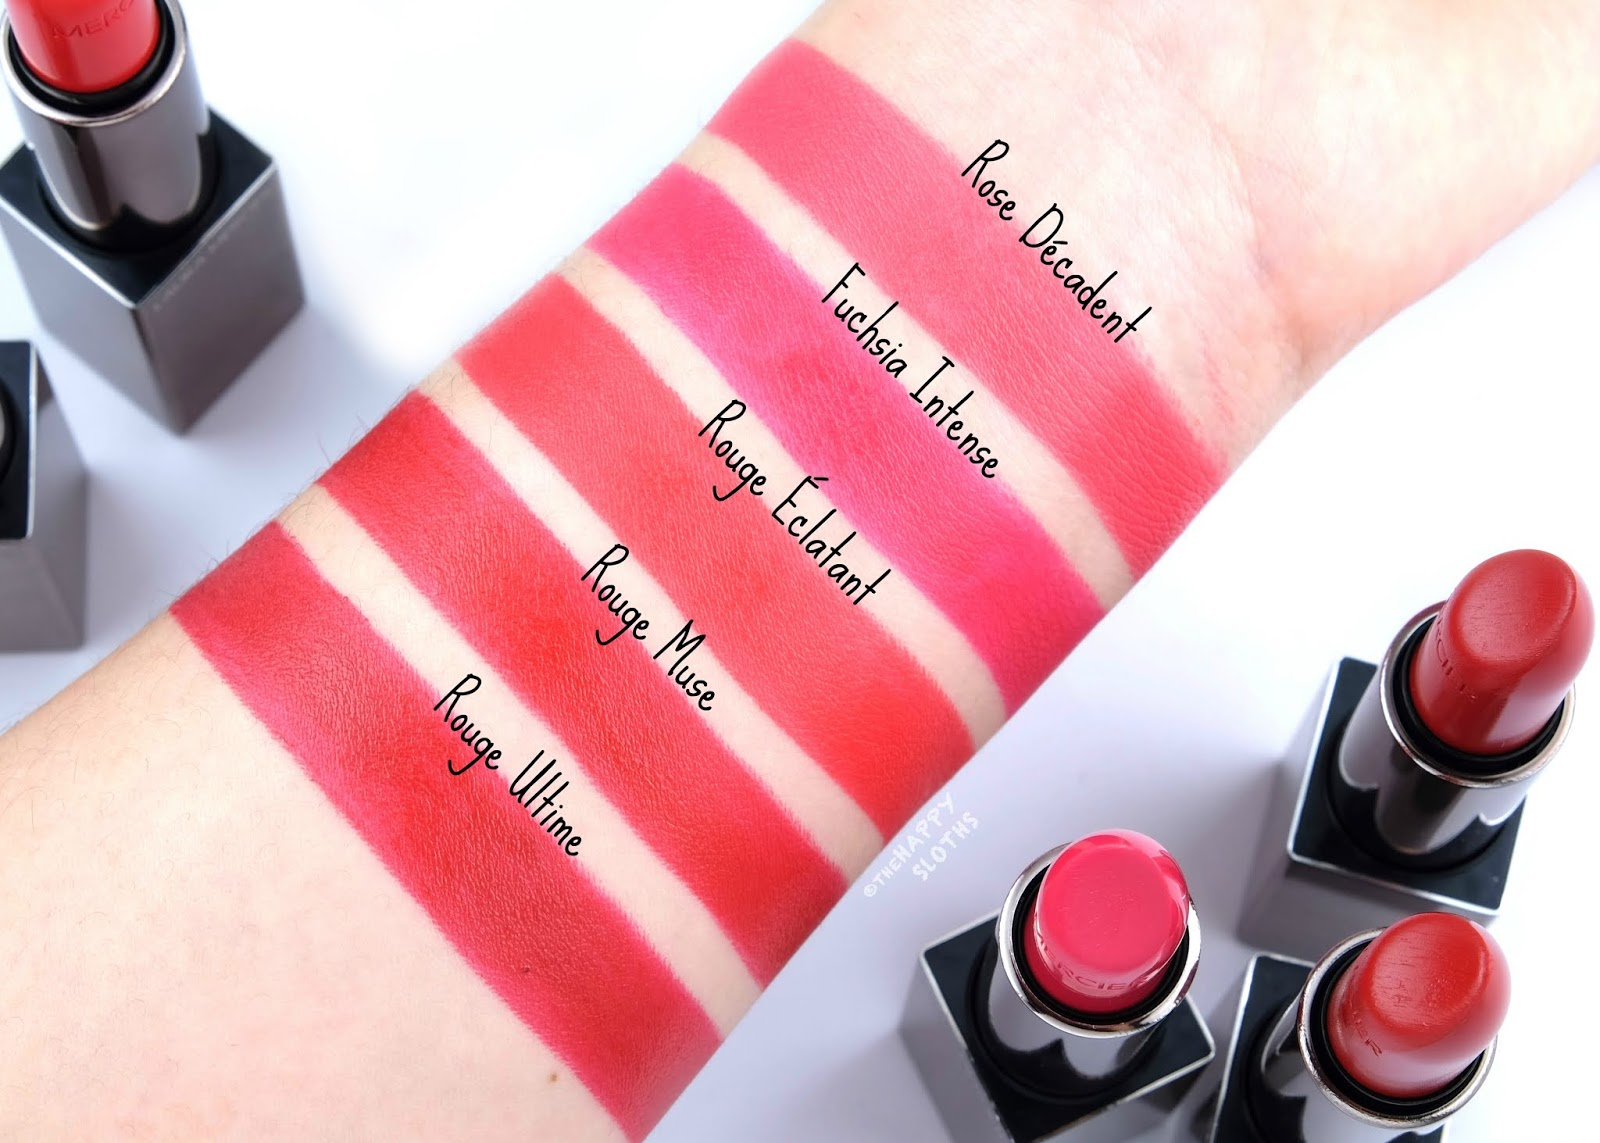 Laura Mercier | Rouge Essentiel Silky Crème Lipstick: Review and Swatches